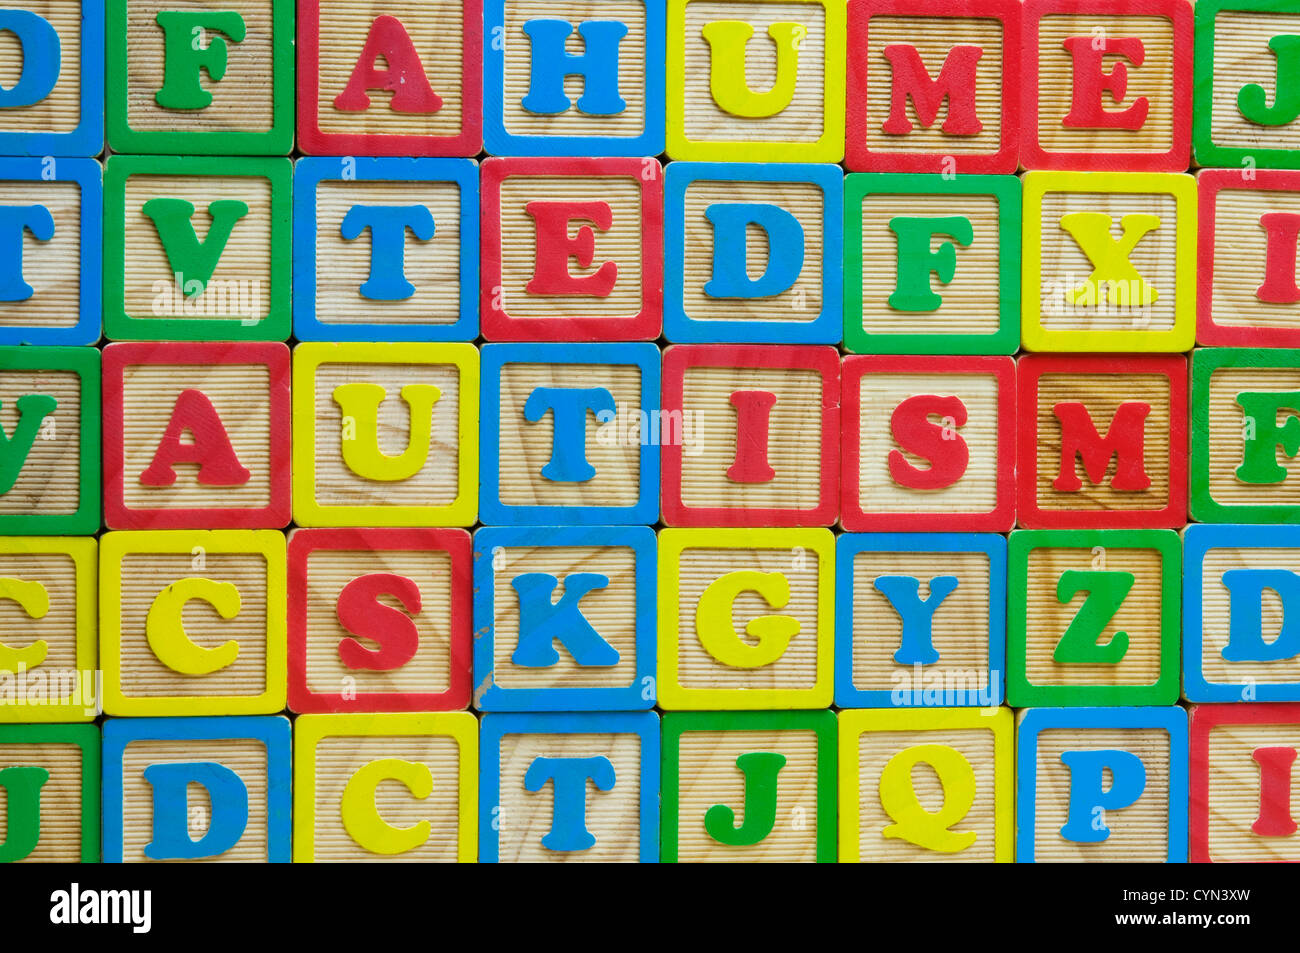 The word Autism made from toy alphabet blocks - Stock Image